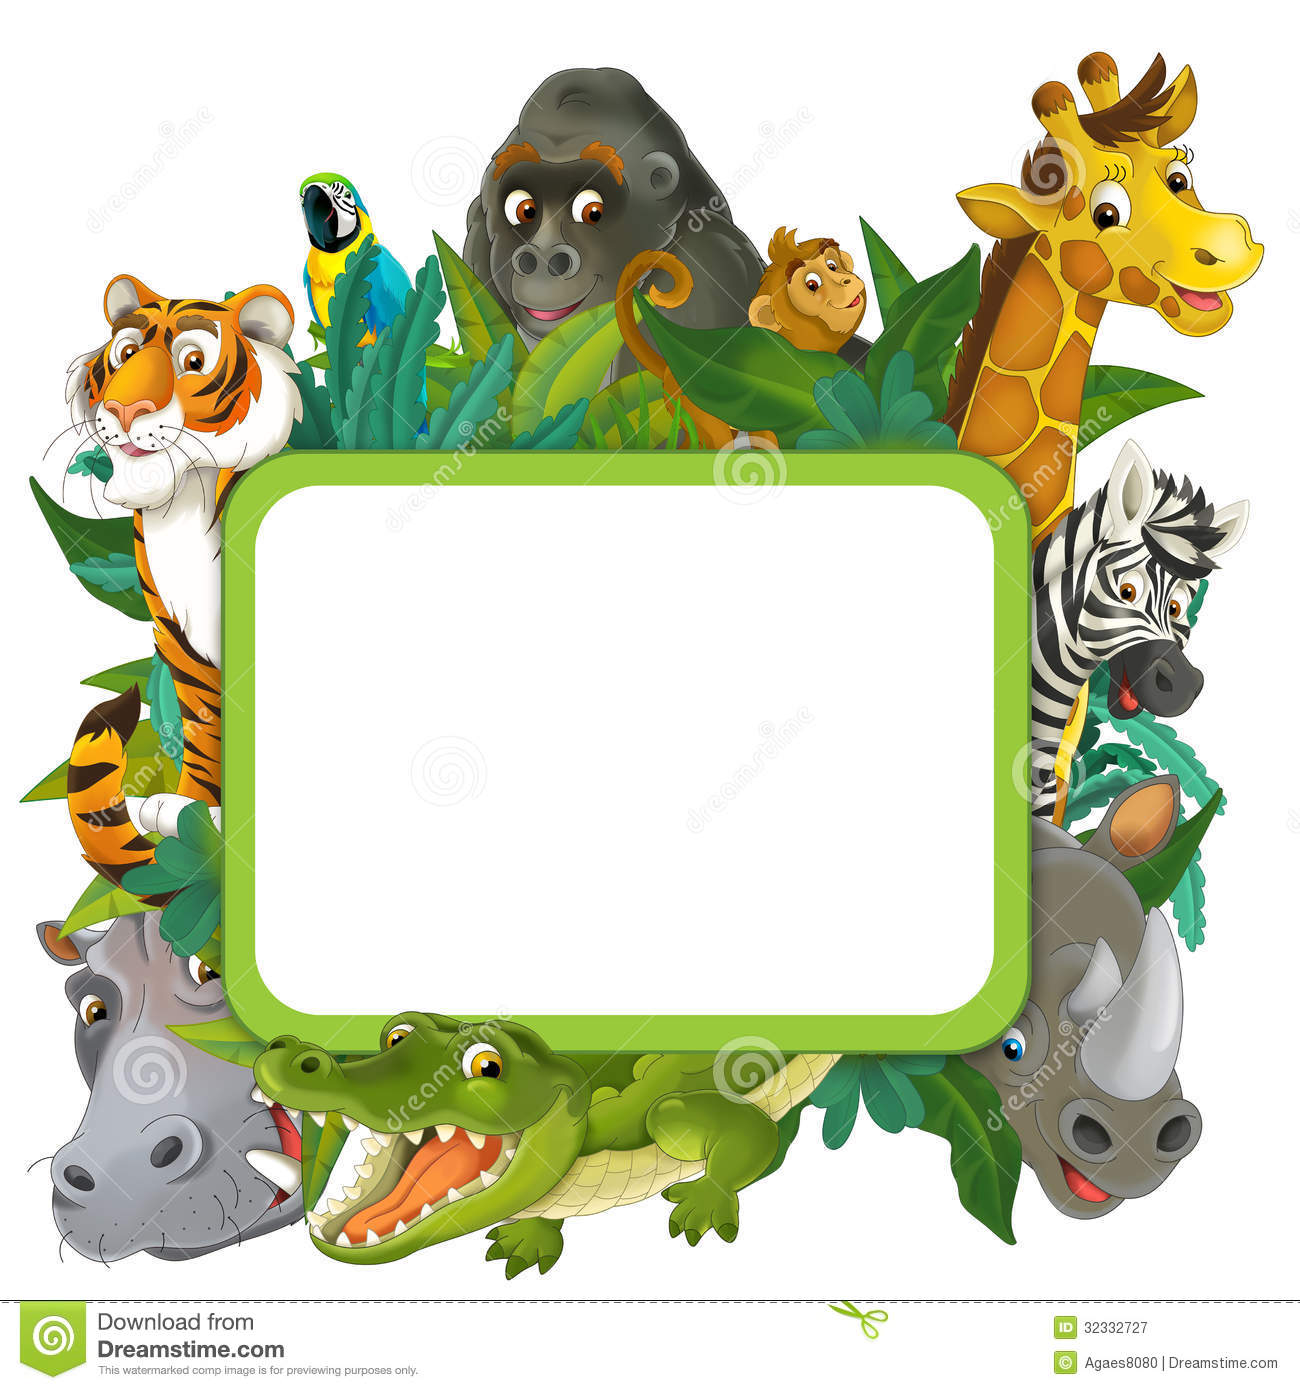 free animal clipart | free download best free animal clipart on